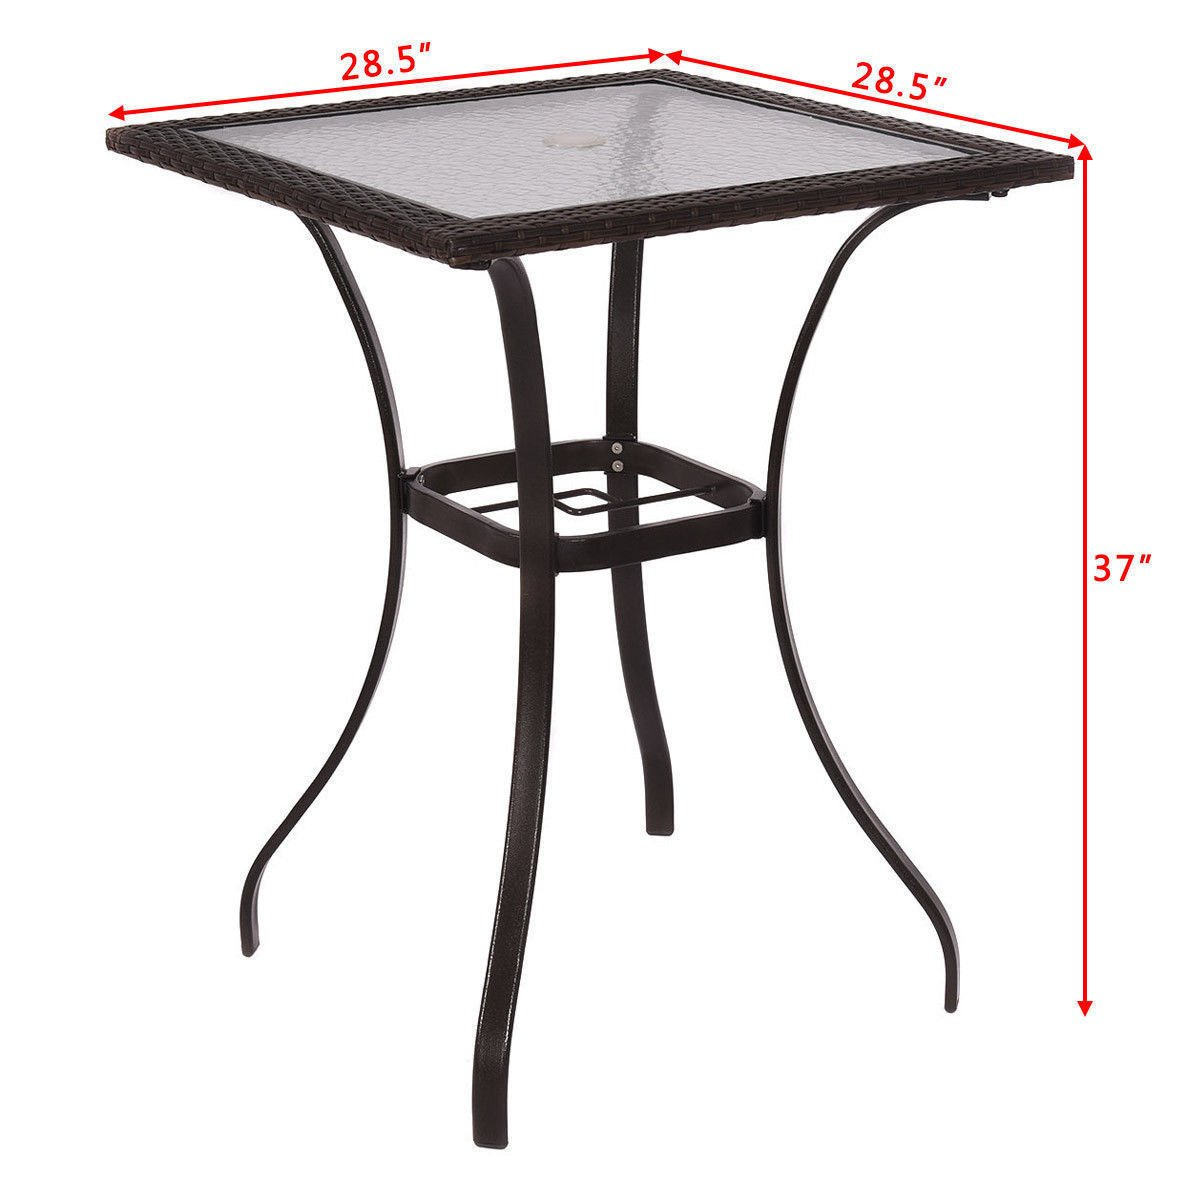 GoodGoods LLC Bar Square Table Glass Modern and Useful Outdoor Patio Rattan Wicker Top Yard Garden Furniture New by GoodGoods LLC (Image #2)